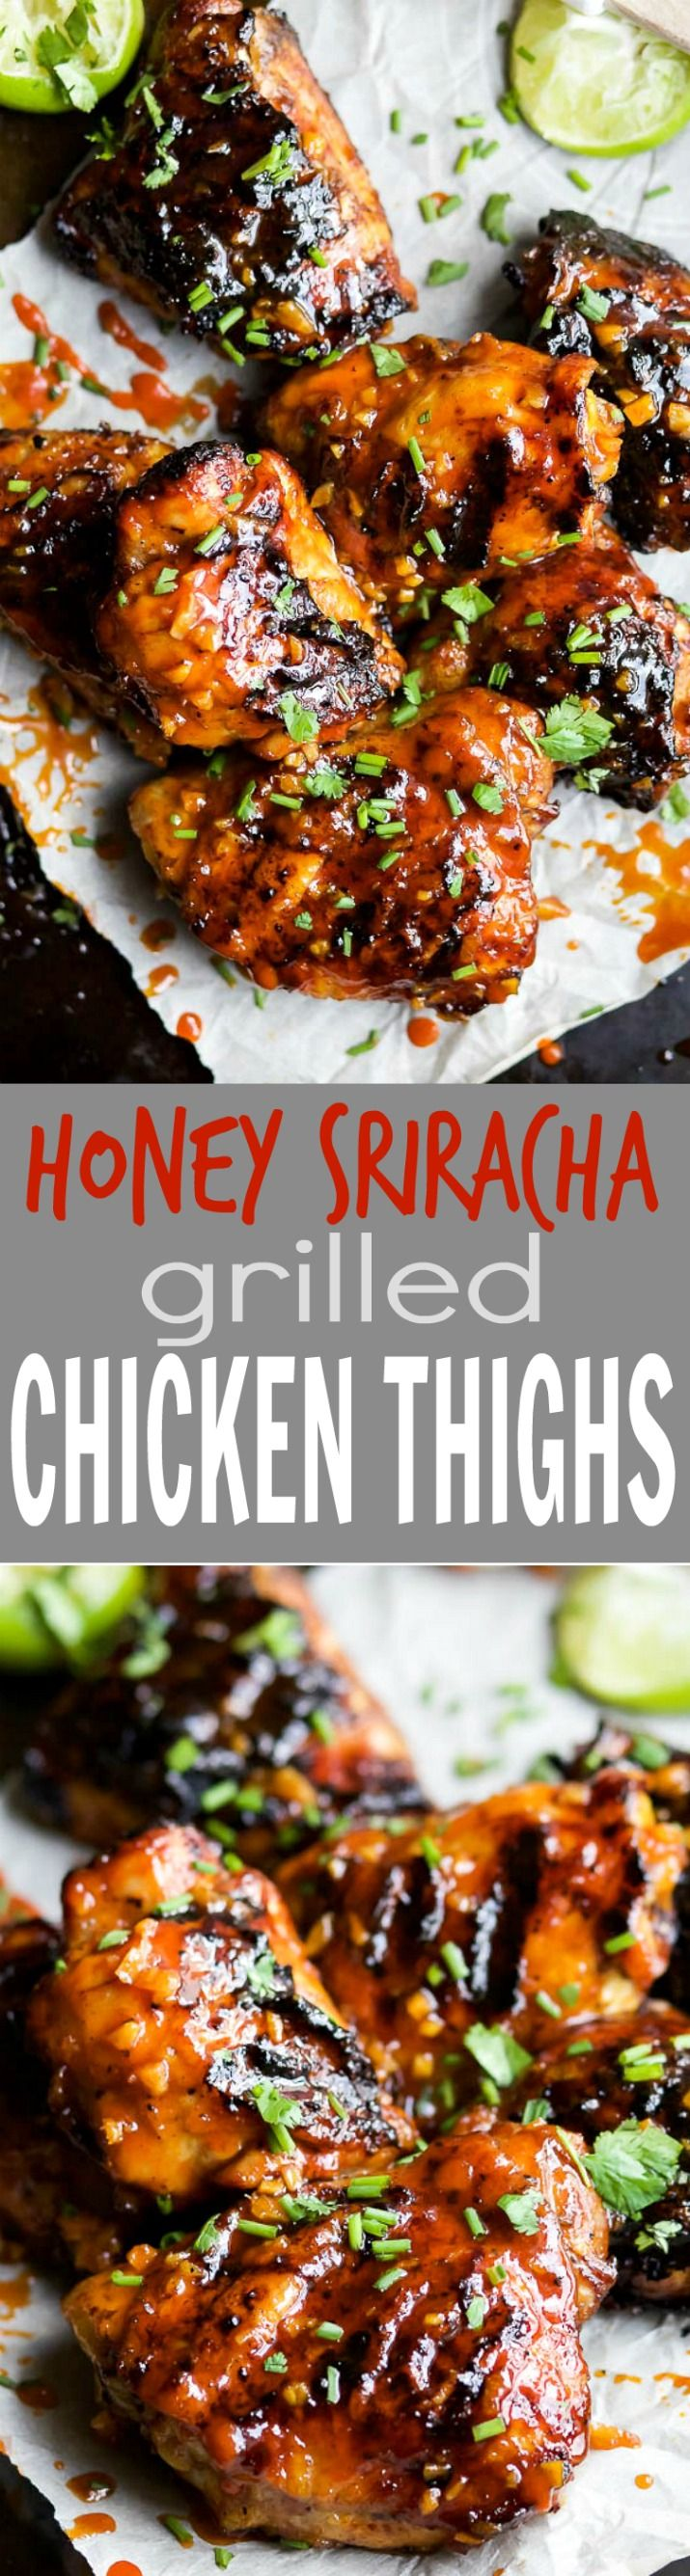 Grilled Honey Sriracha Chicken Thighs #grillingrecipes